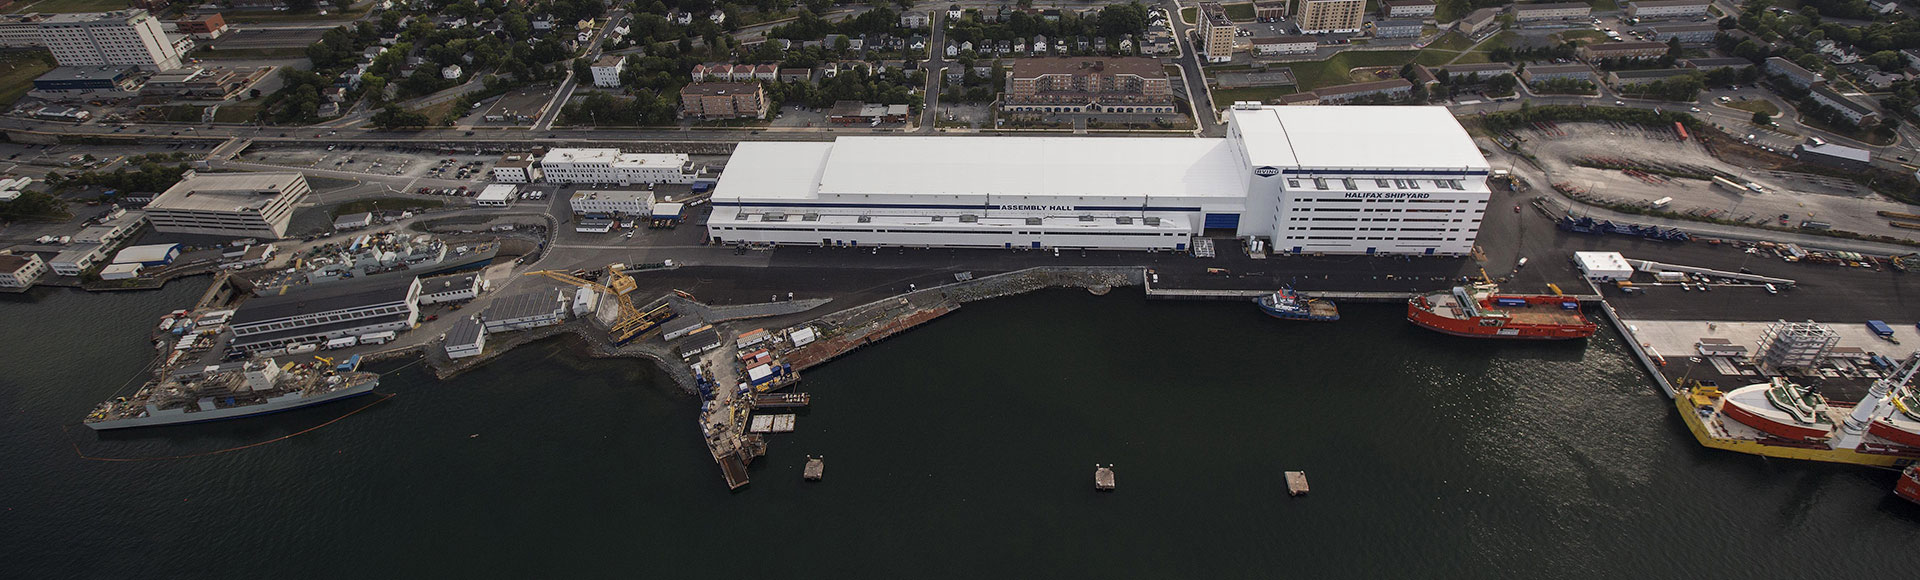 Halifax Shipyard Modernization Program